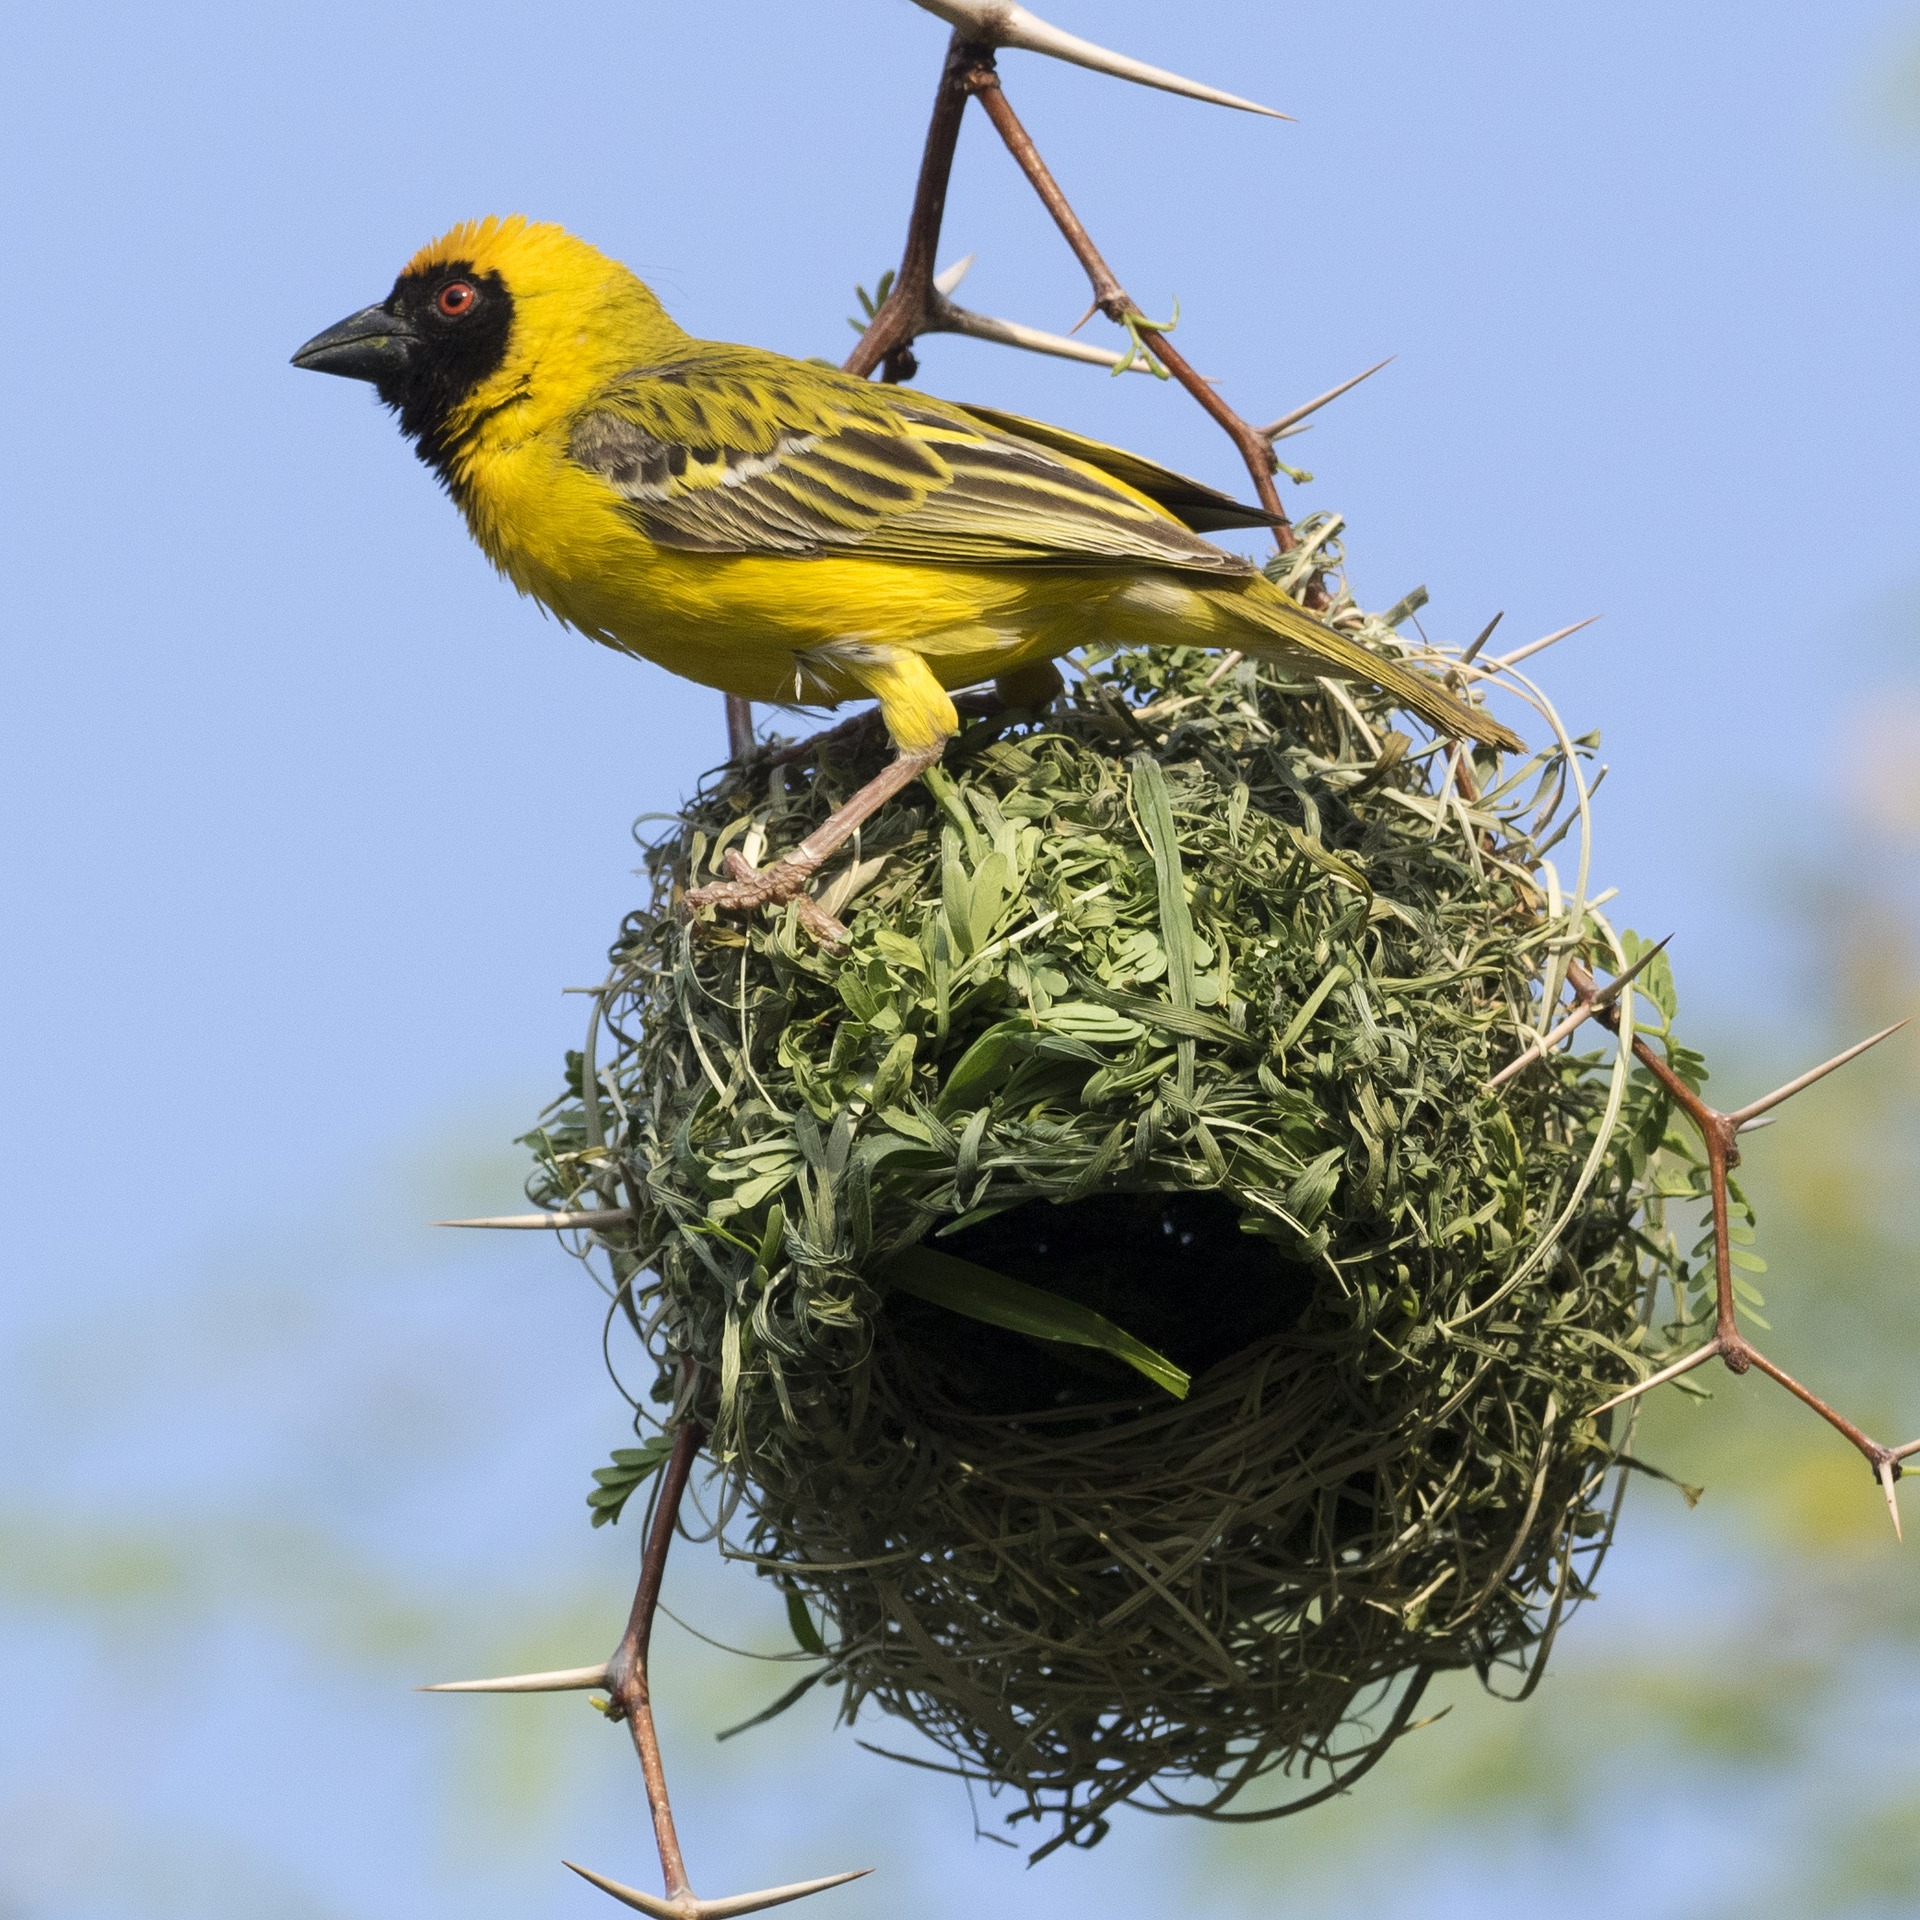 Bird on nest about the take flight